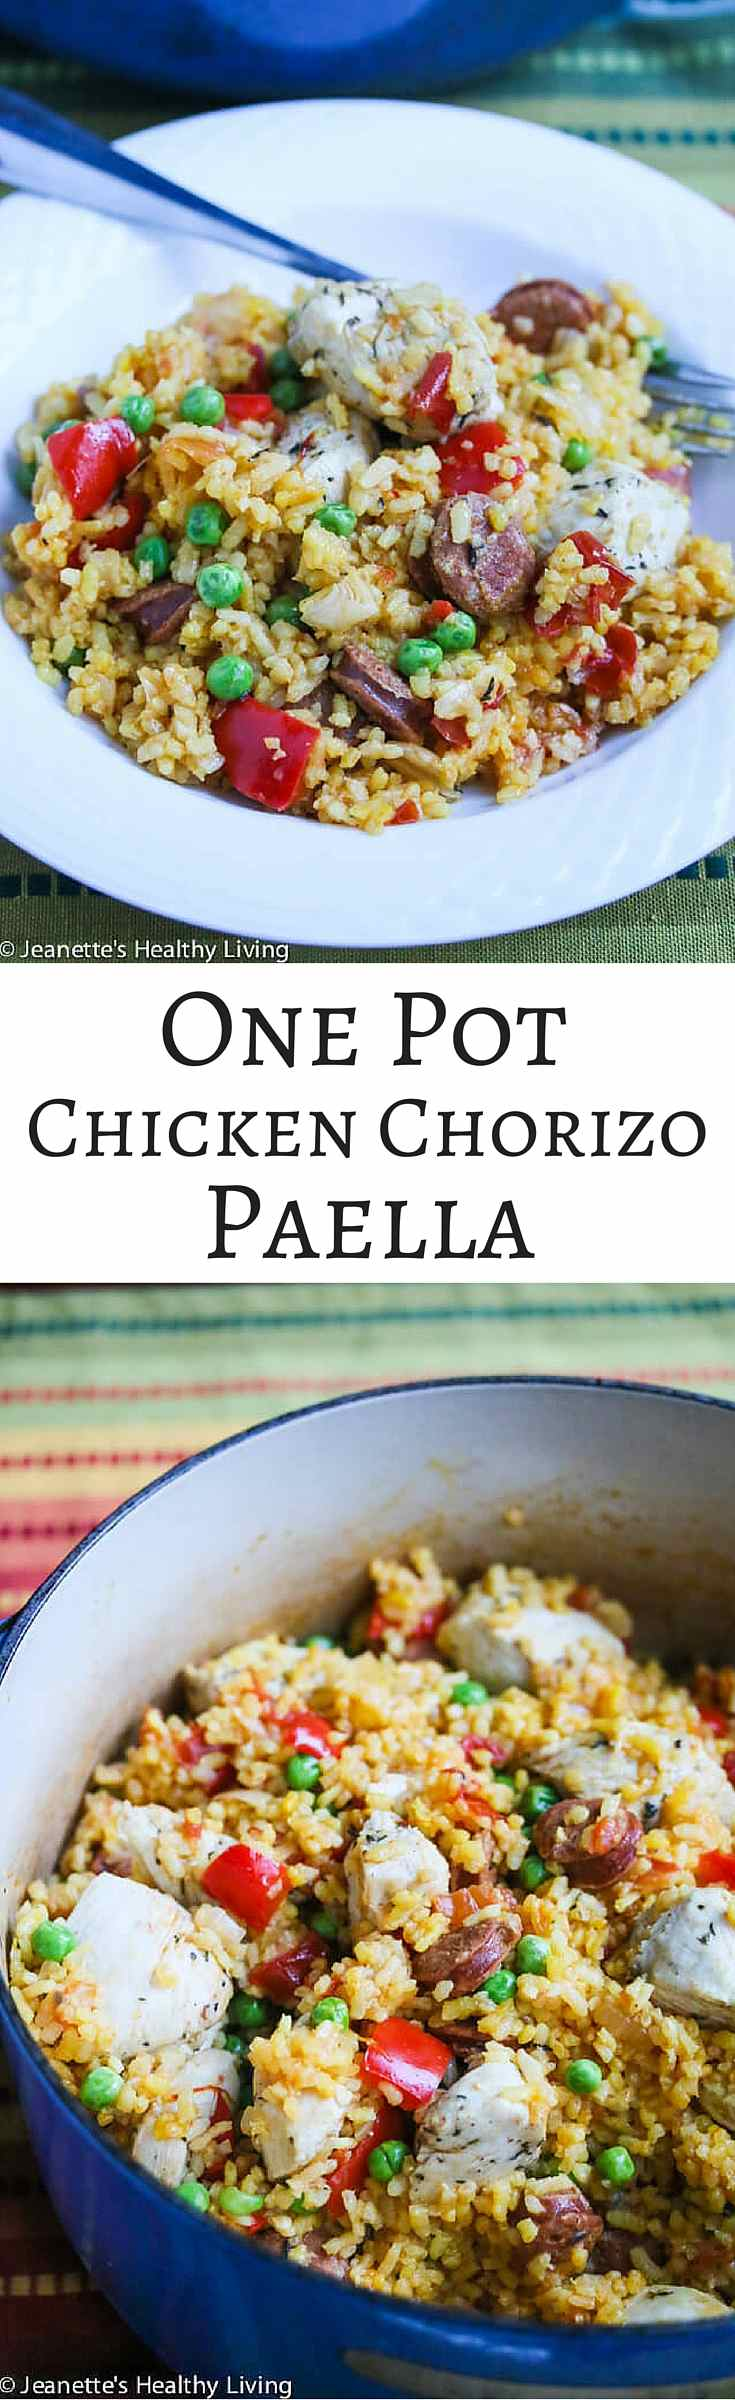 One Pot Chicken Chorizo Paella - so delicious and flavorful and all cooked in one pot!